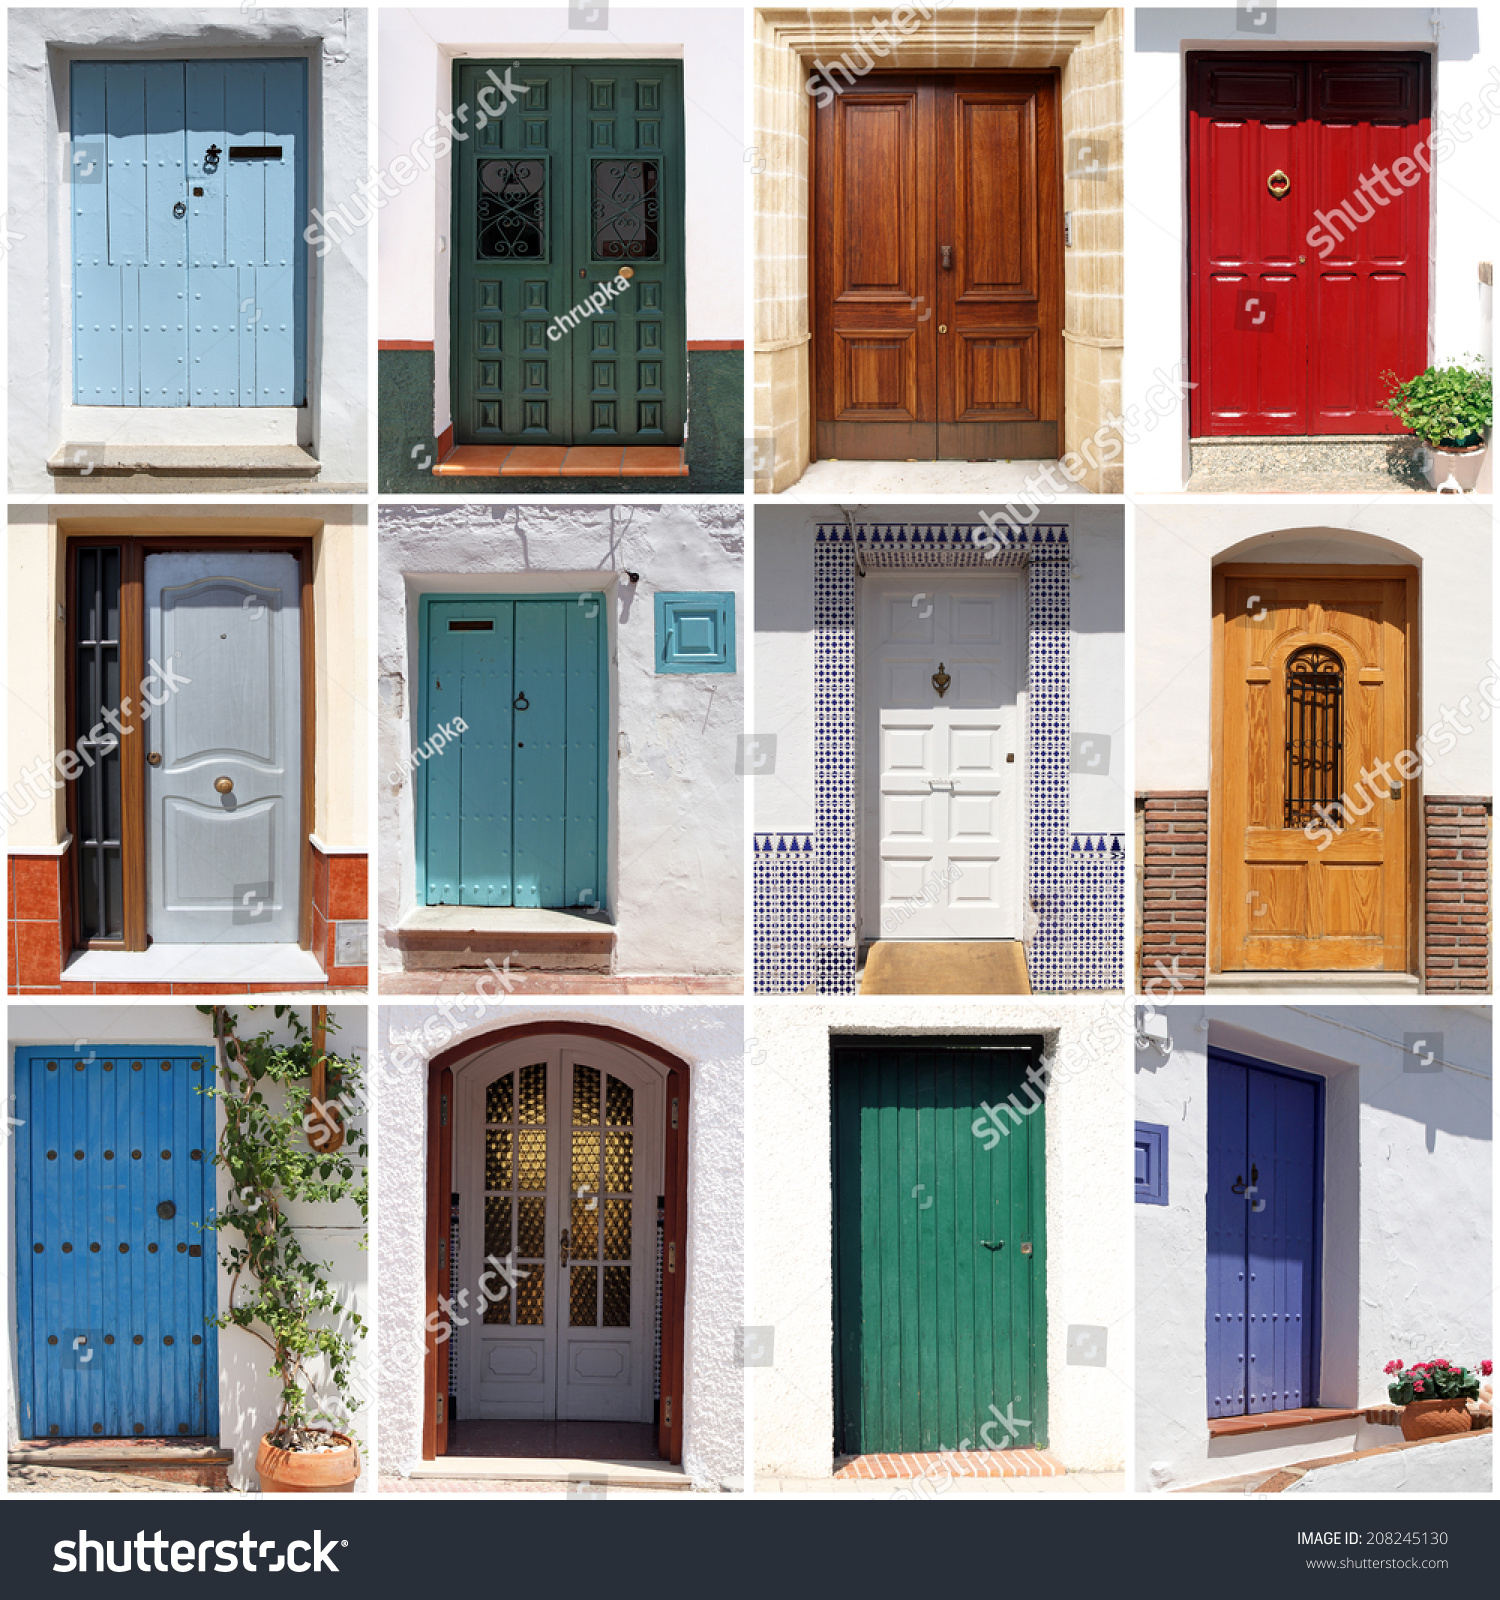 Collage Colorful Spanish Front Doors Stock Photo 208245130